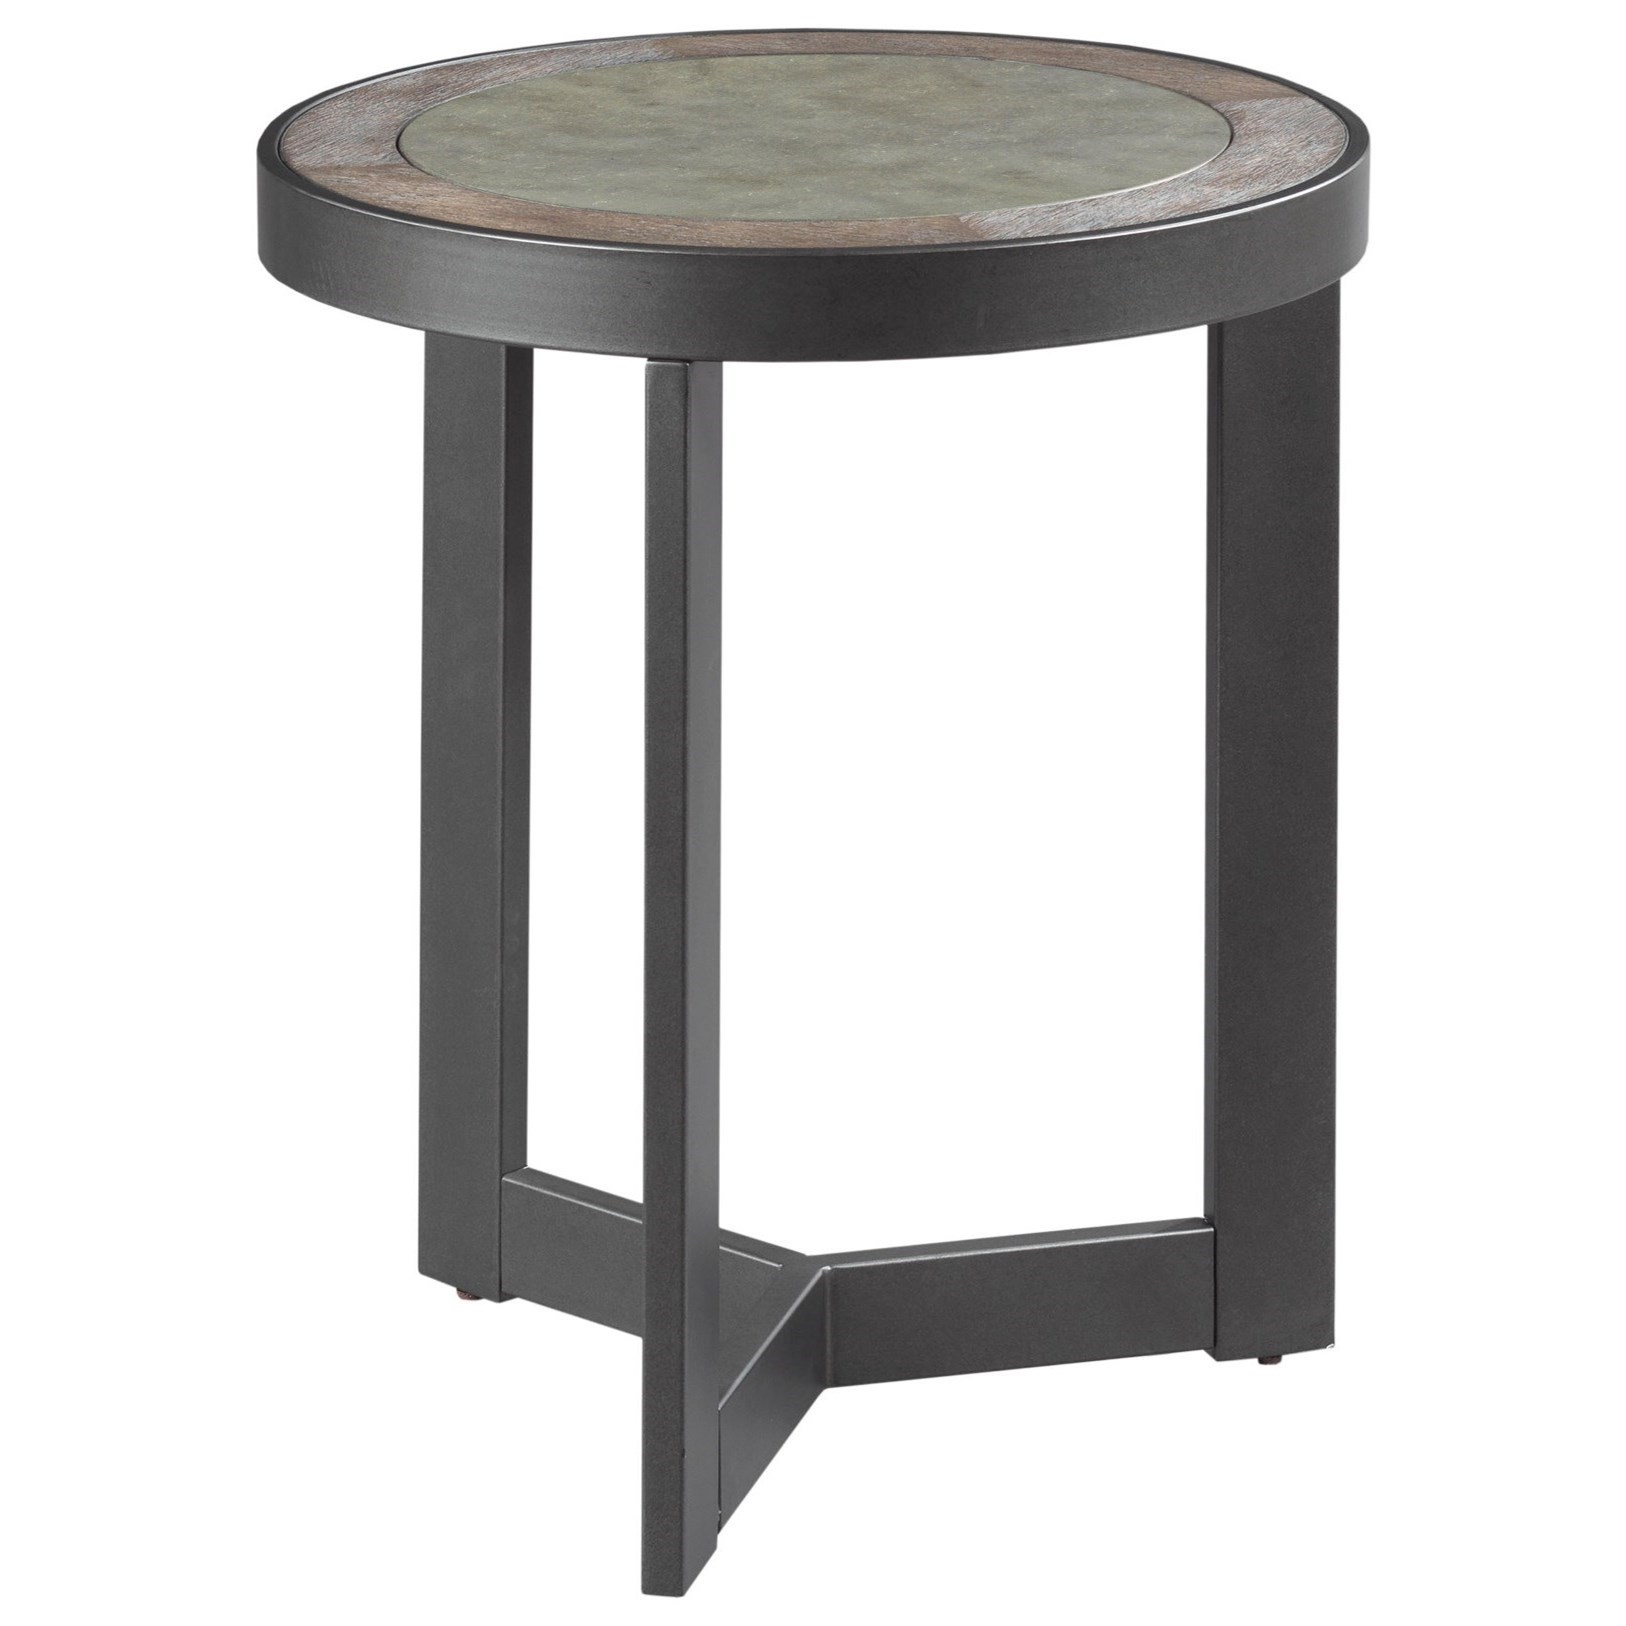 Graystone Round End Table by England at Darvin Furniture